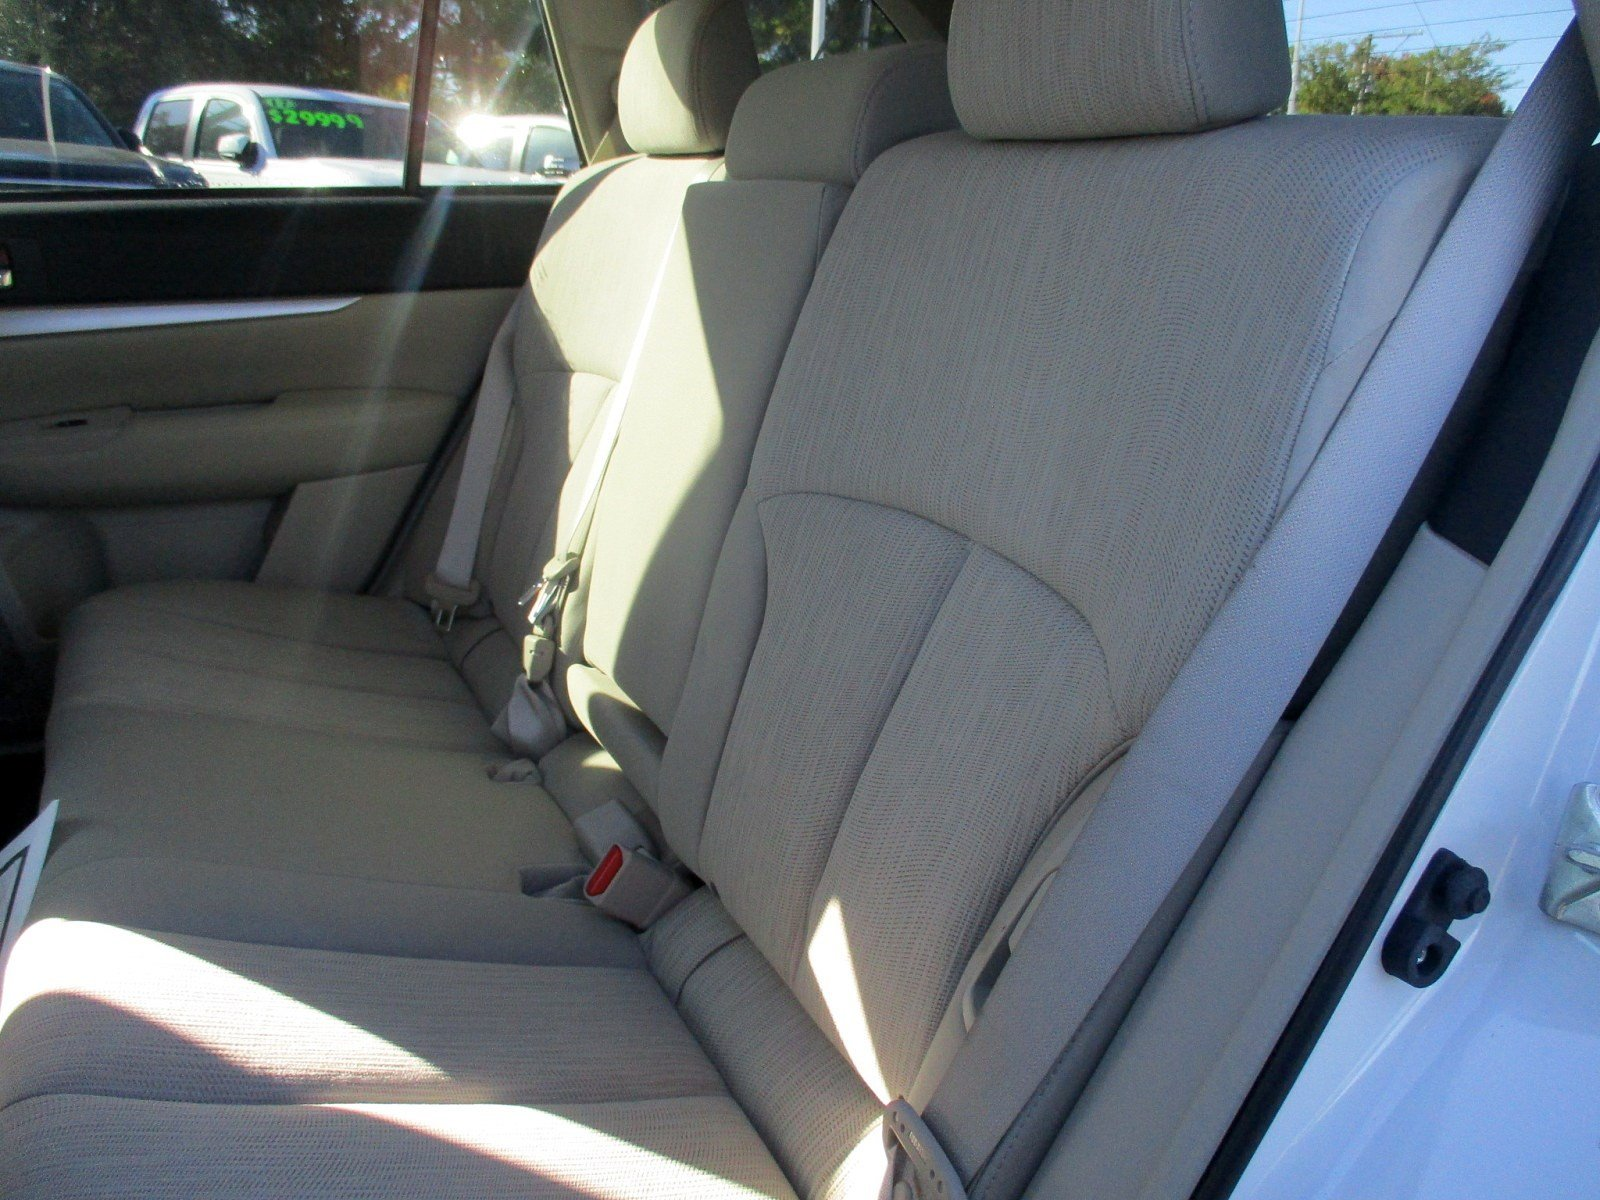 Sensational Pre Owned 2013 Subaru Outback 2 5I Premium Awd Machost Co Dining Chair Design Ideas Machostcouk